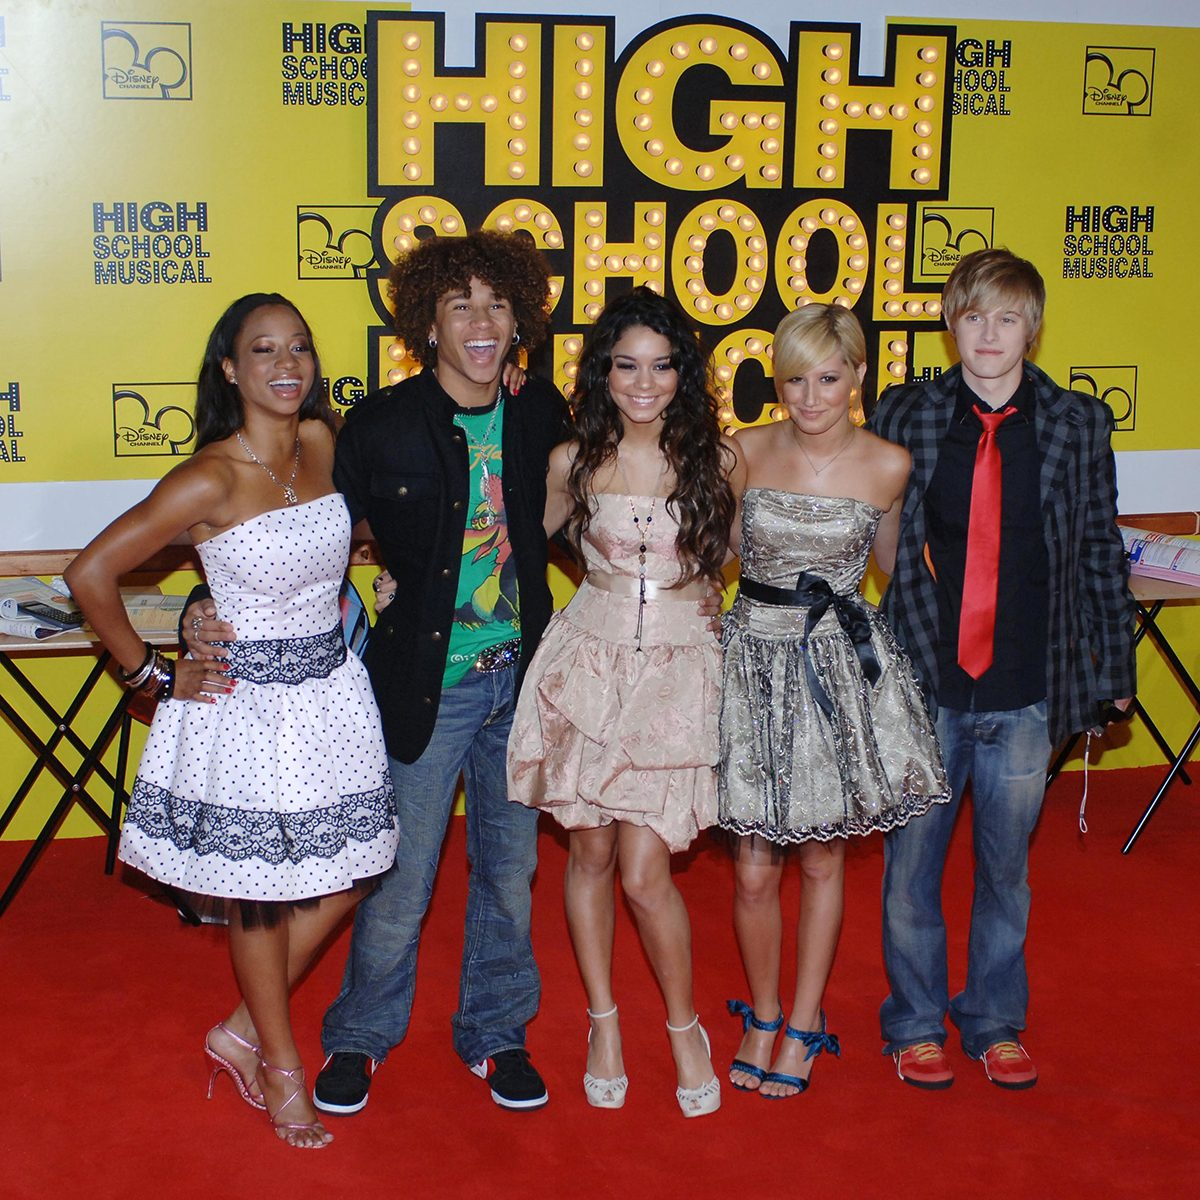 Monique Coleman,Corbin Bleu,Vanessa Hudgens, Ashley Tisdale and Lucas Grabeel attend the premiere of High School Musical at Empire,Leicester Square,London,UK (Photo by Rune Hellestad/Corbis via Getty Images)